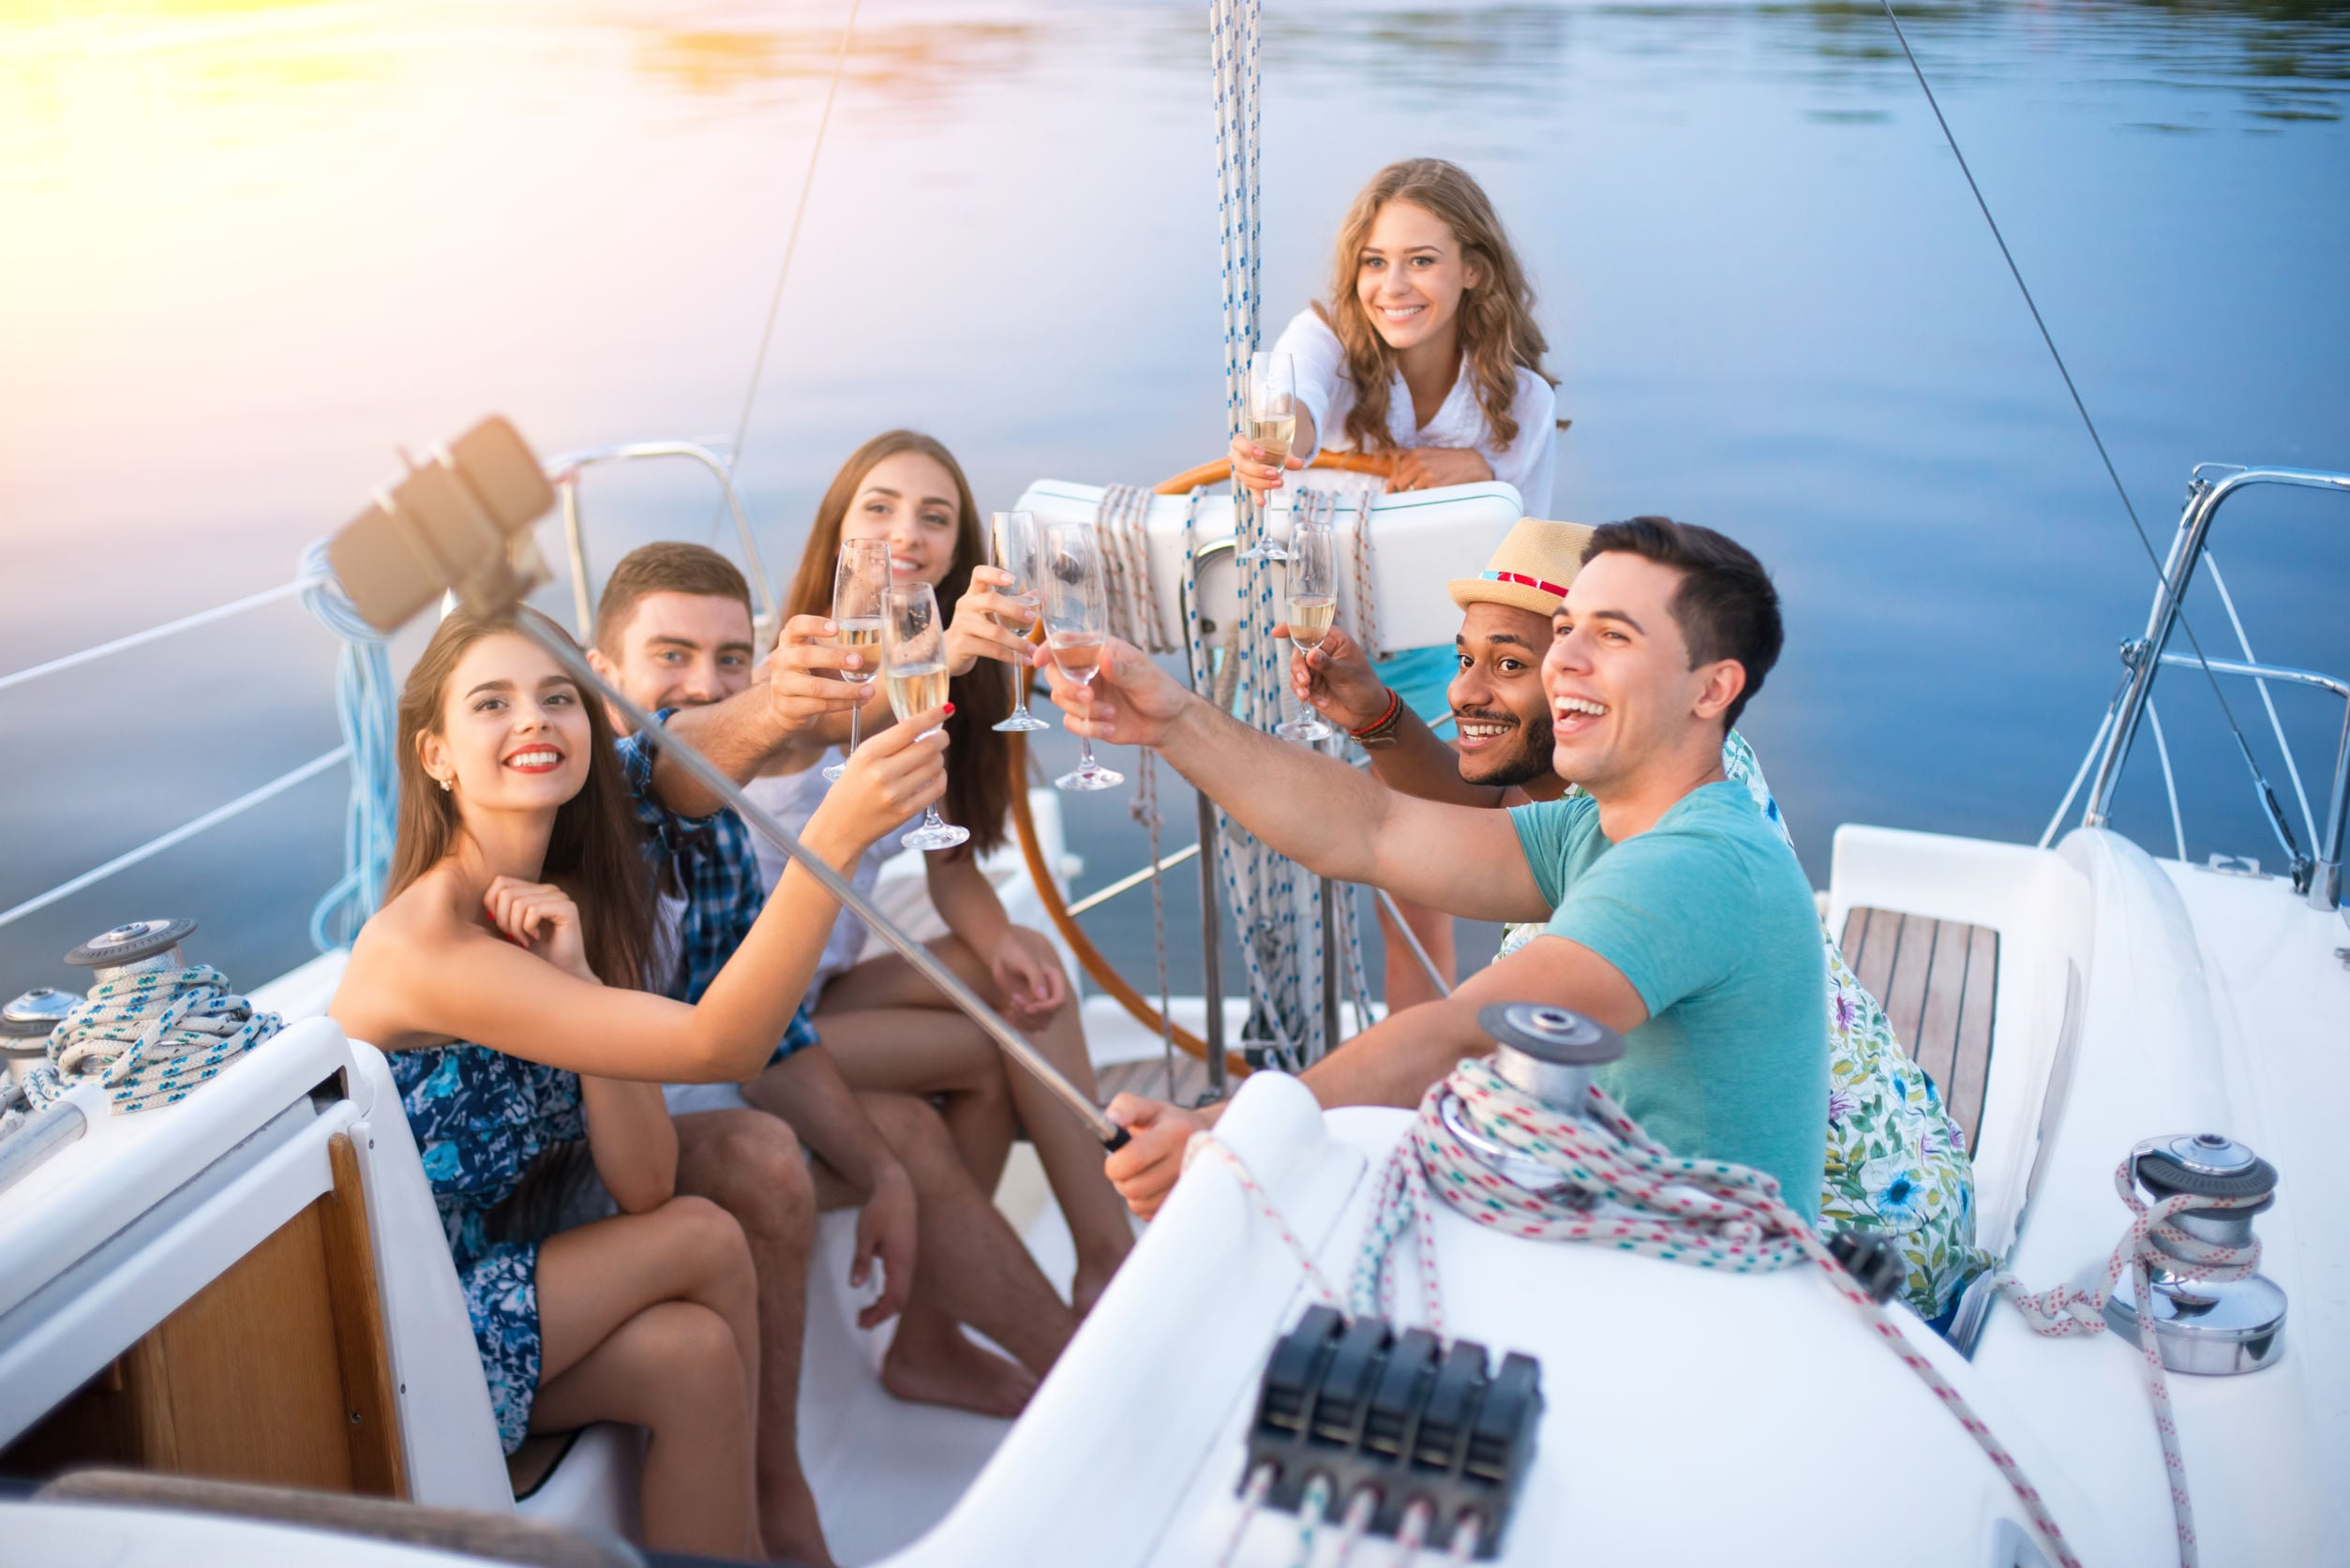 Main Types of Boating Accidents in Florida